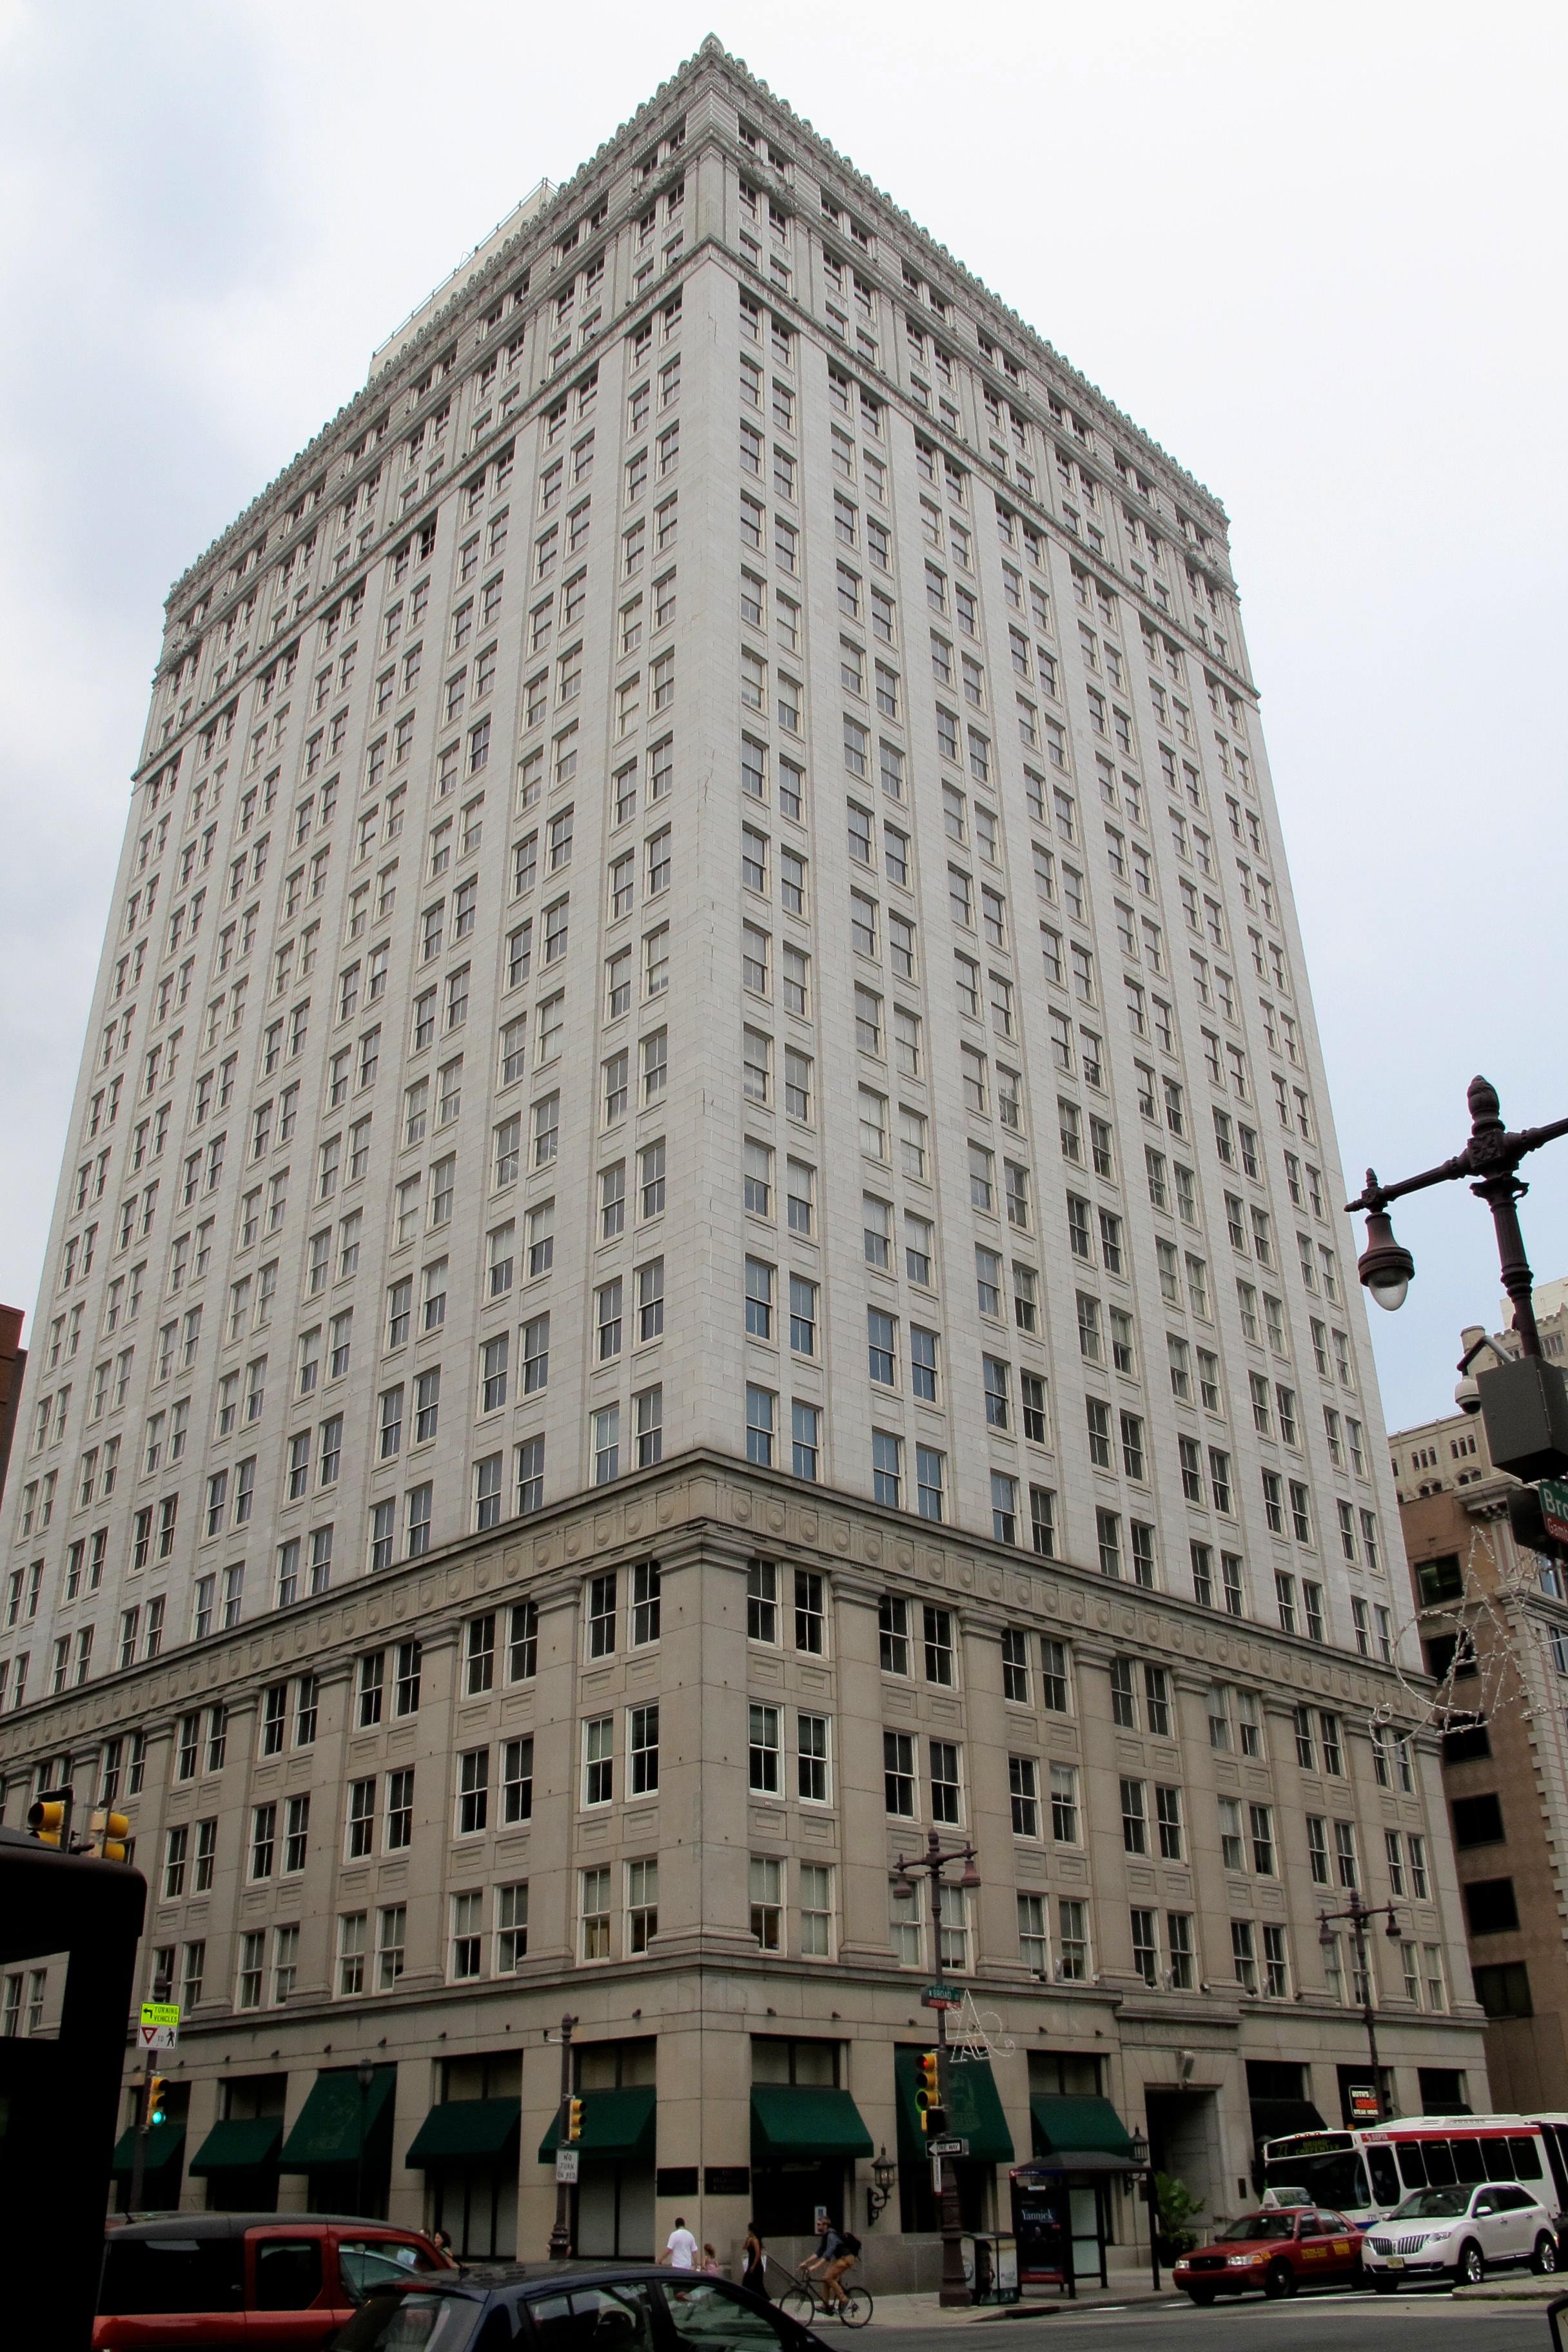 The Atlantic Building, 260 S. Broad Street.